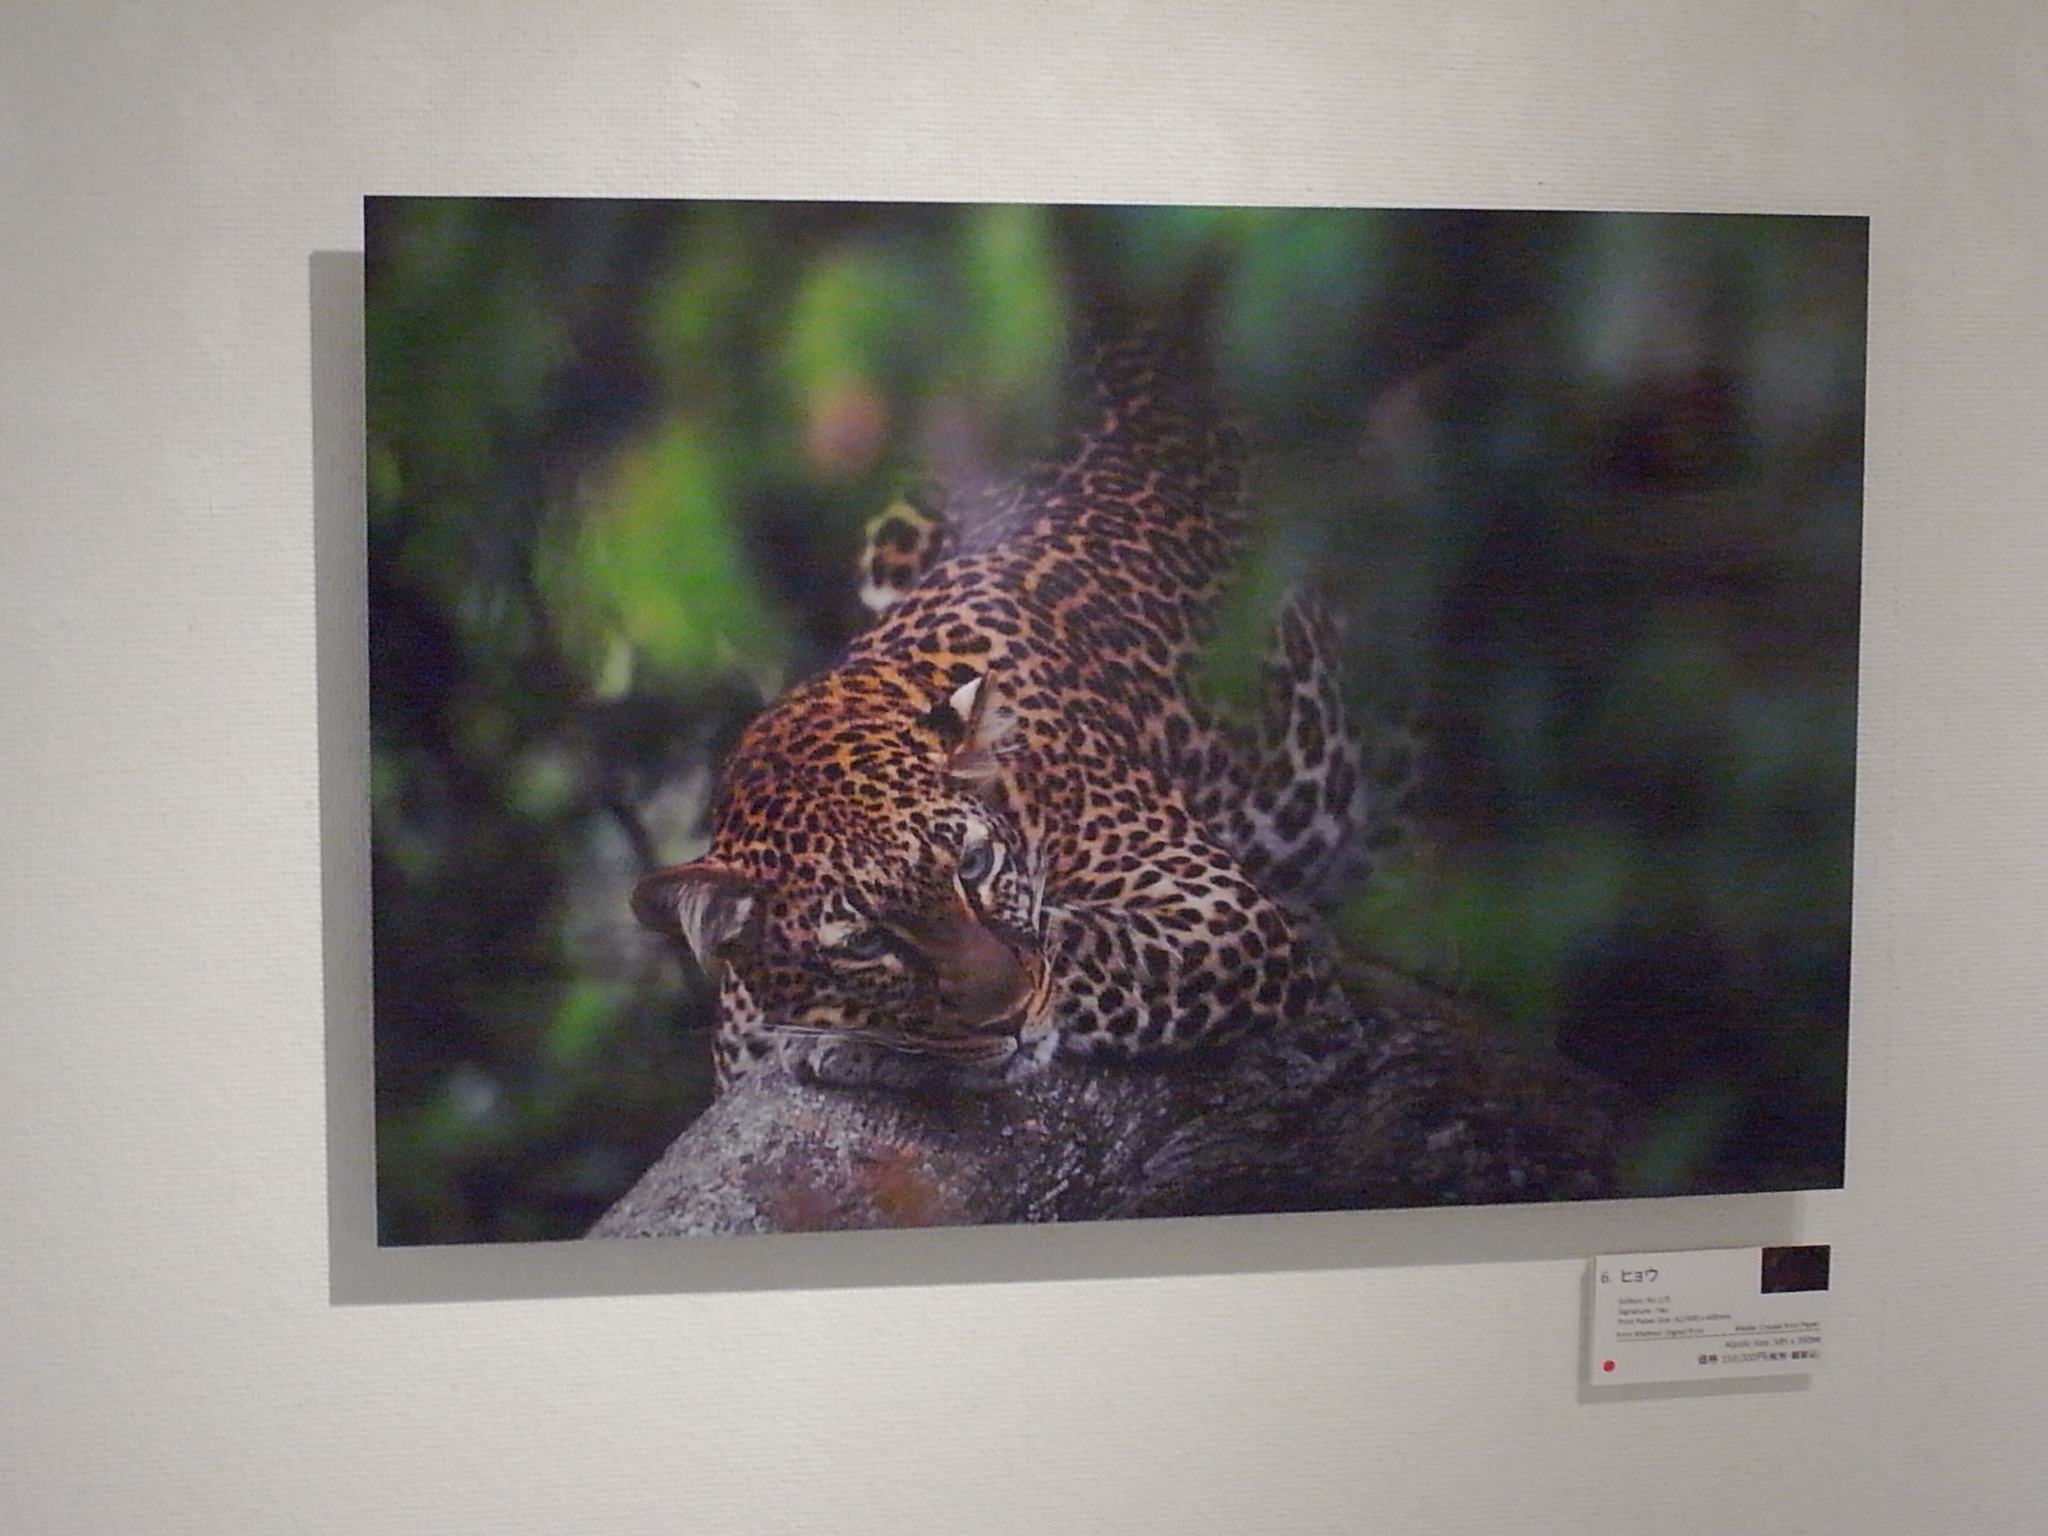 LEOPARD Photo Picture Poster Print Art A0 A1 A2 A3 A4 Animal Poster 3345